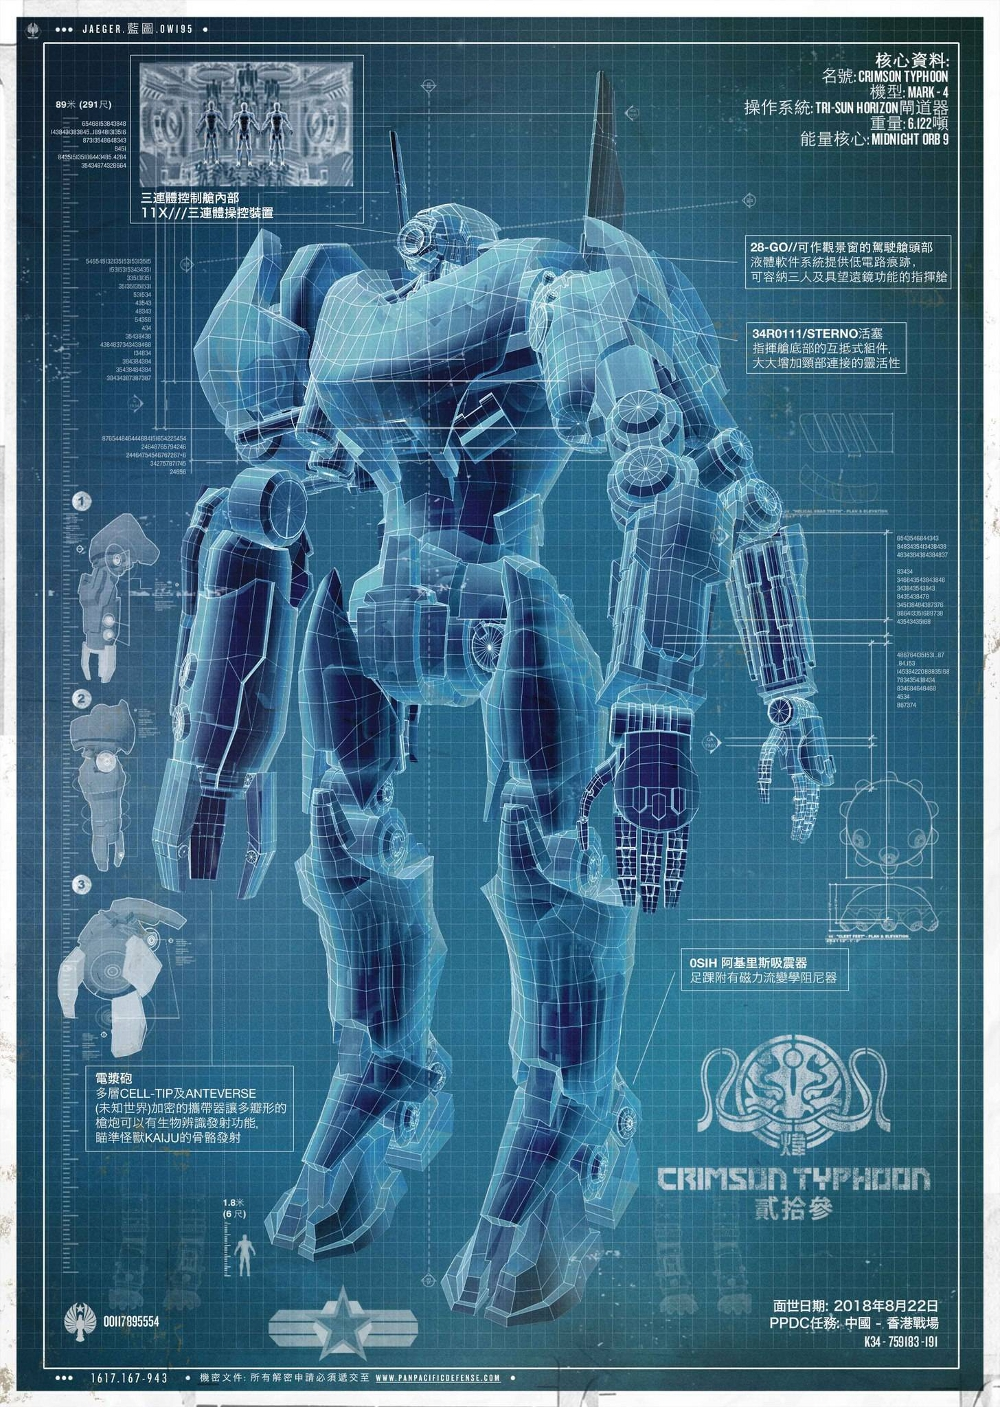 Crimson typhoon jaeger pacific rim wiki fandom powered by wikia ppdc blueprints of the crimson typhoon malvernweather Images